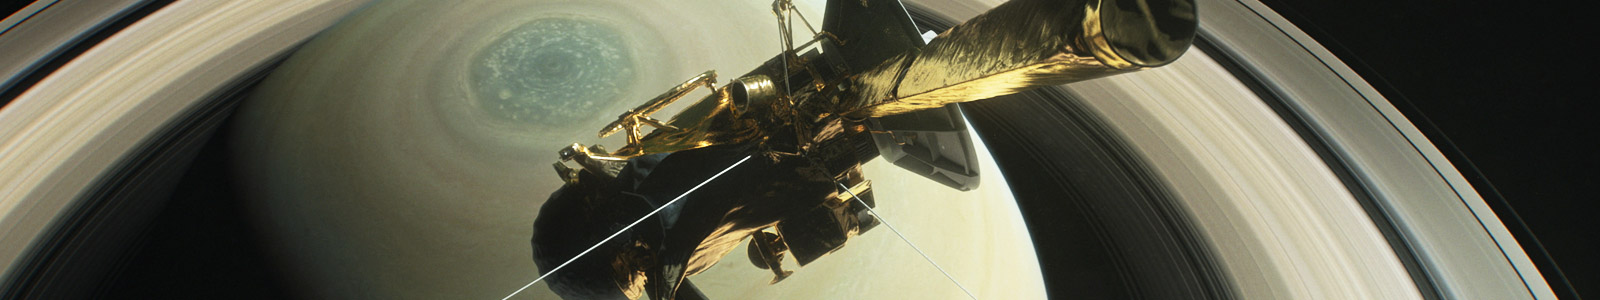 home_slides_1600x300_cassini_illus2